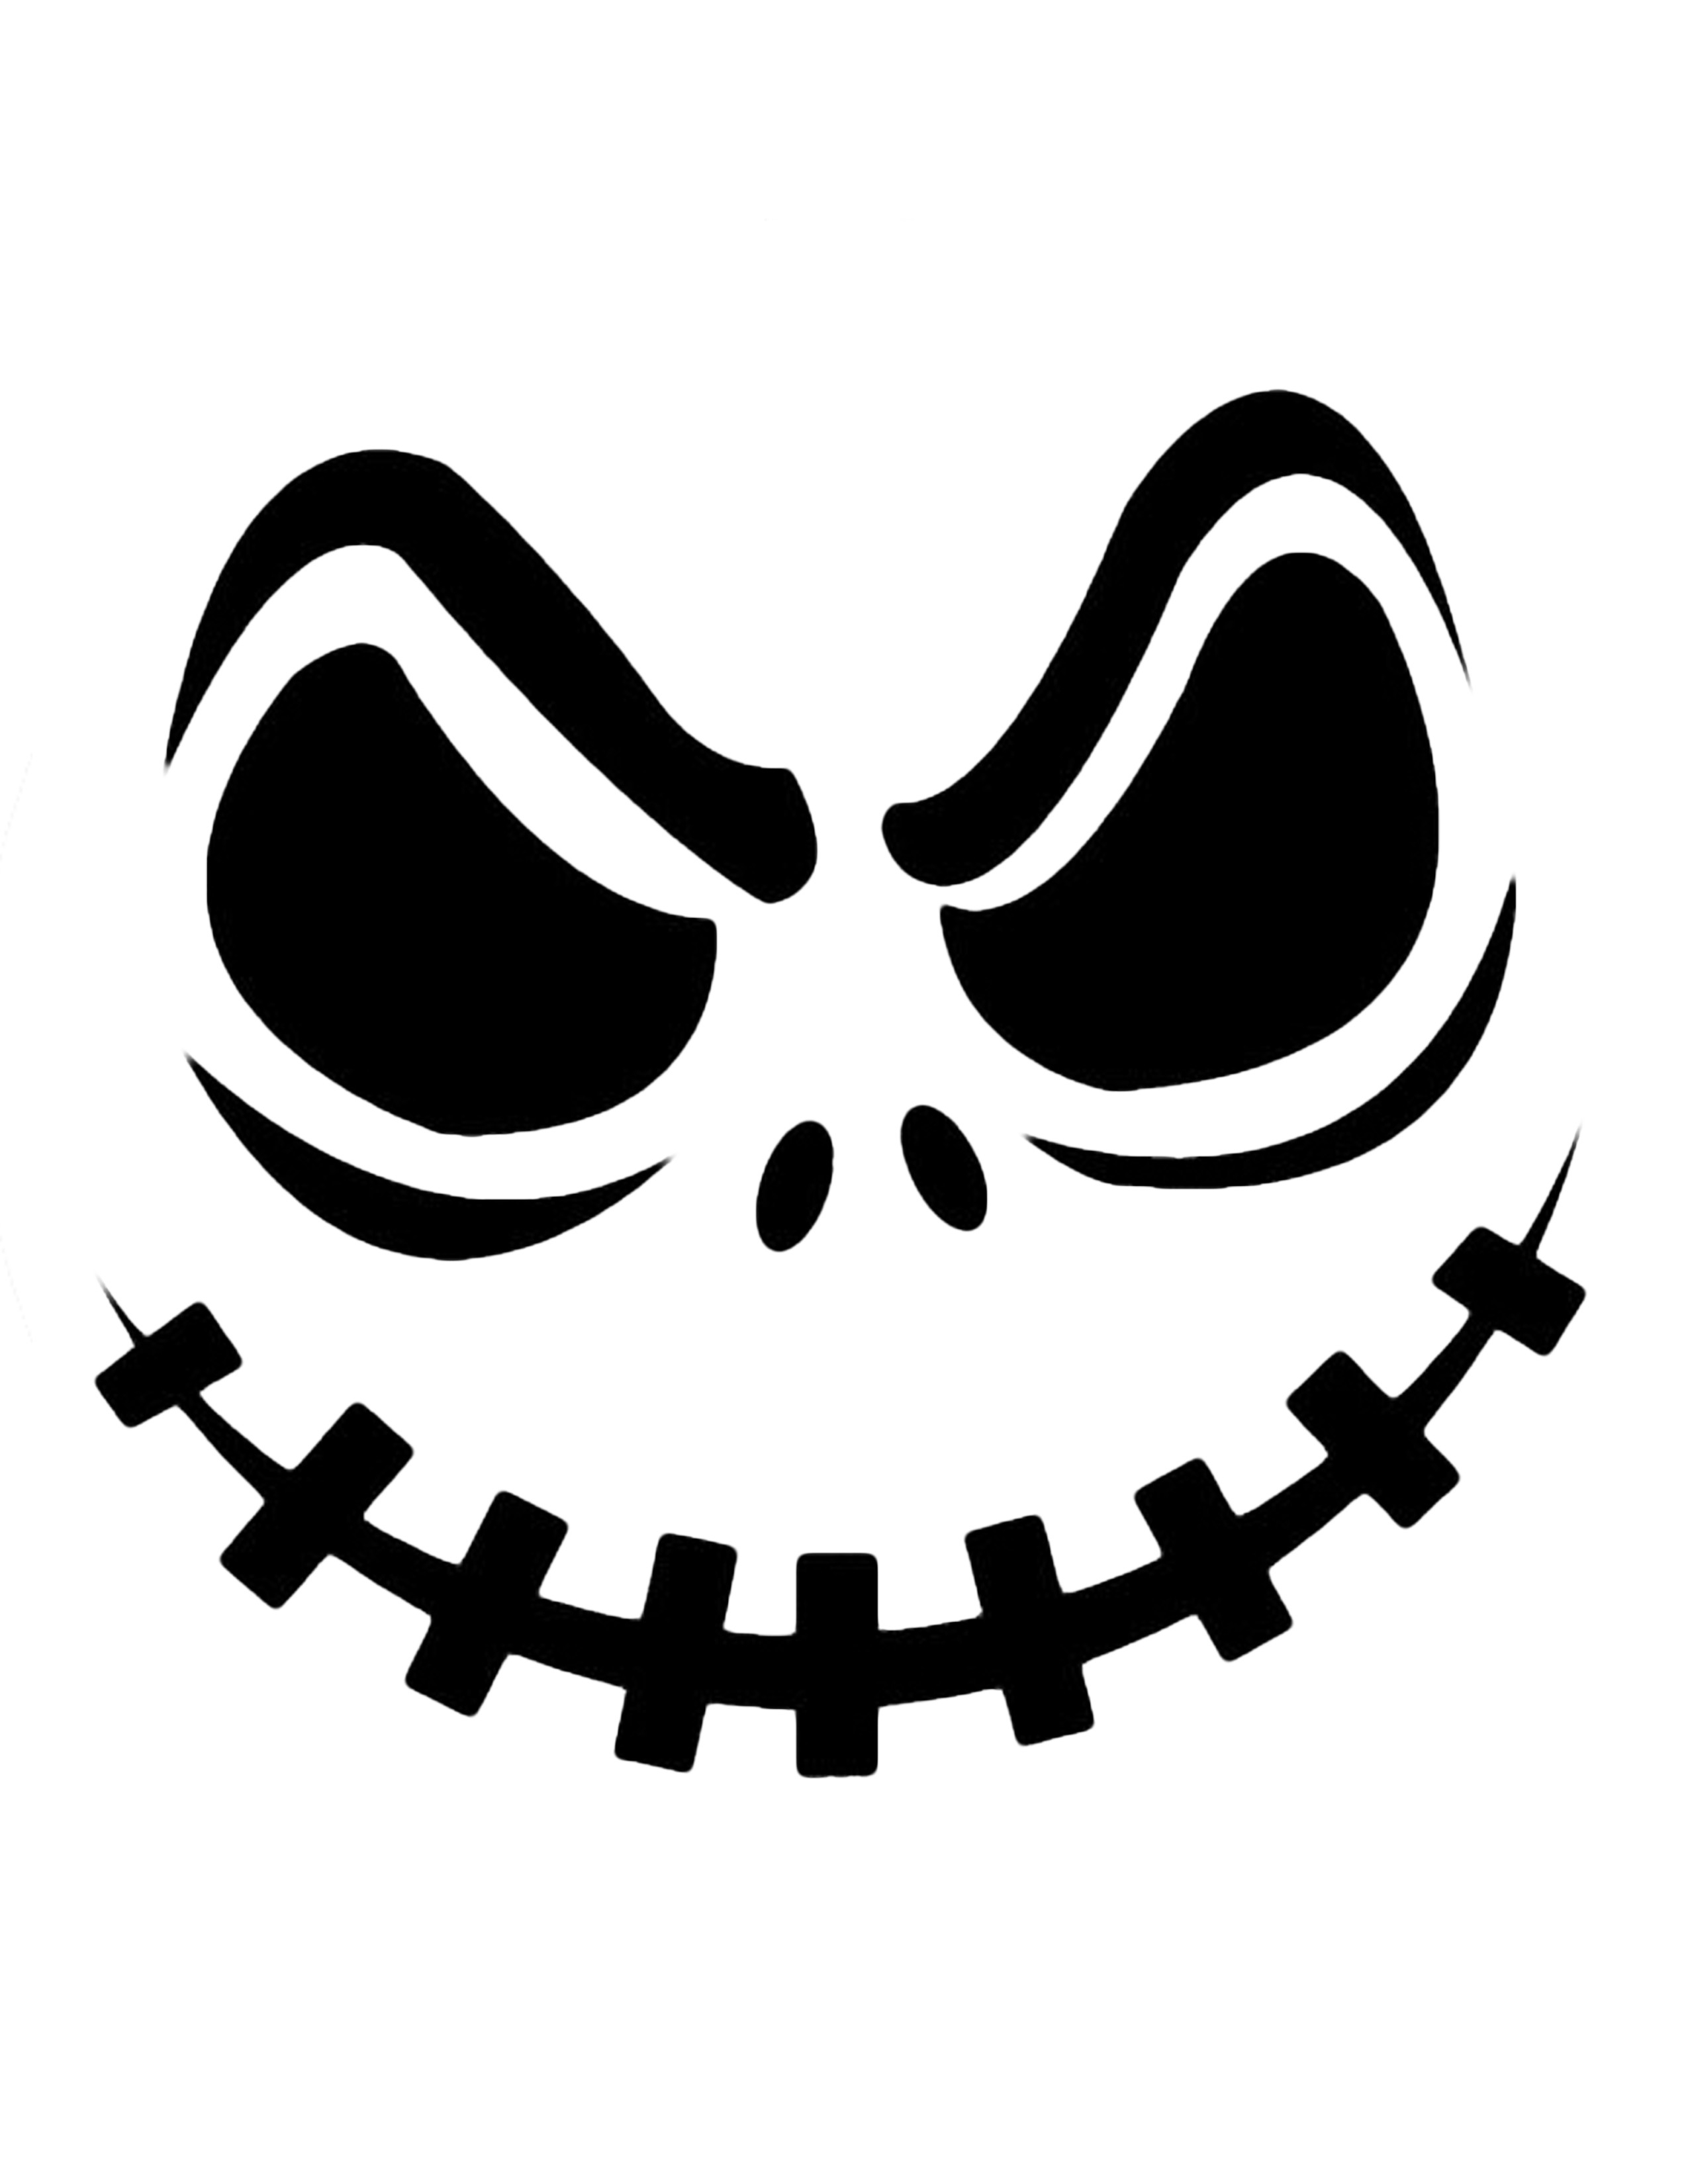 Pumpkin  black and white scary pumpkin clipart black and white